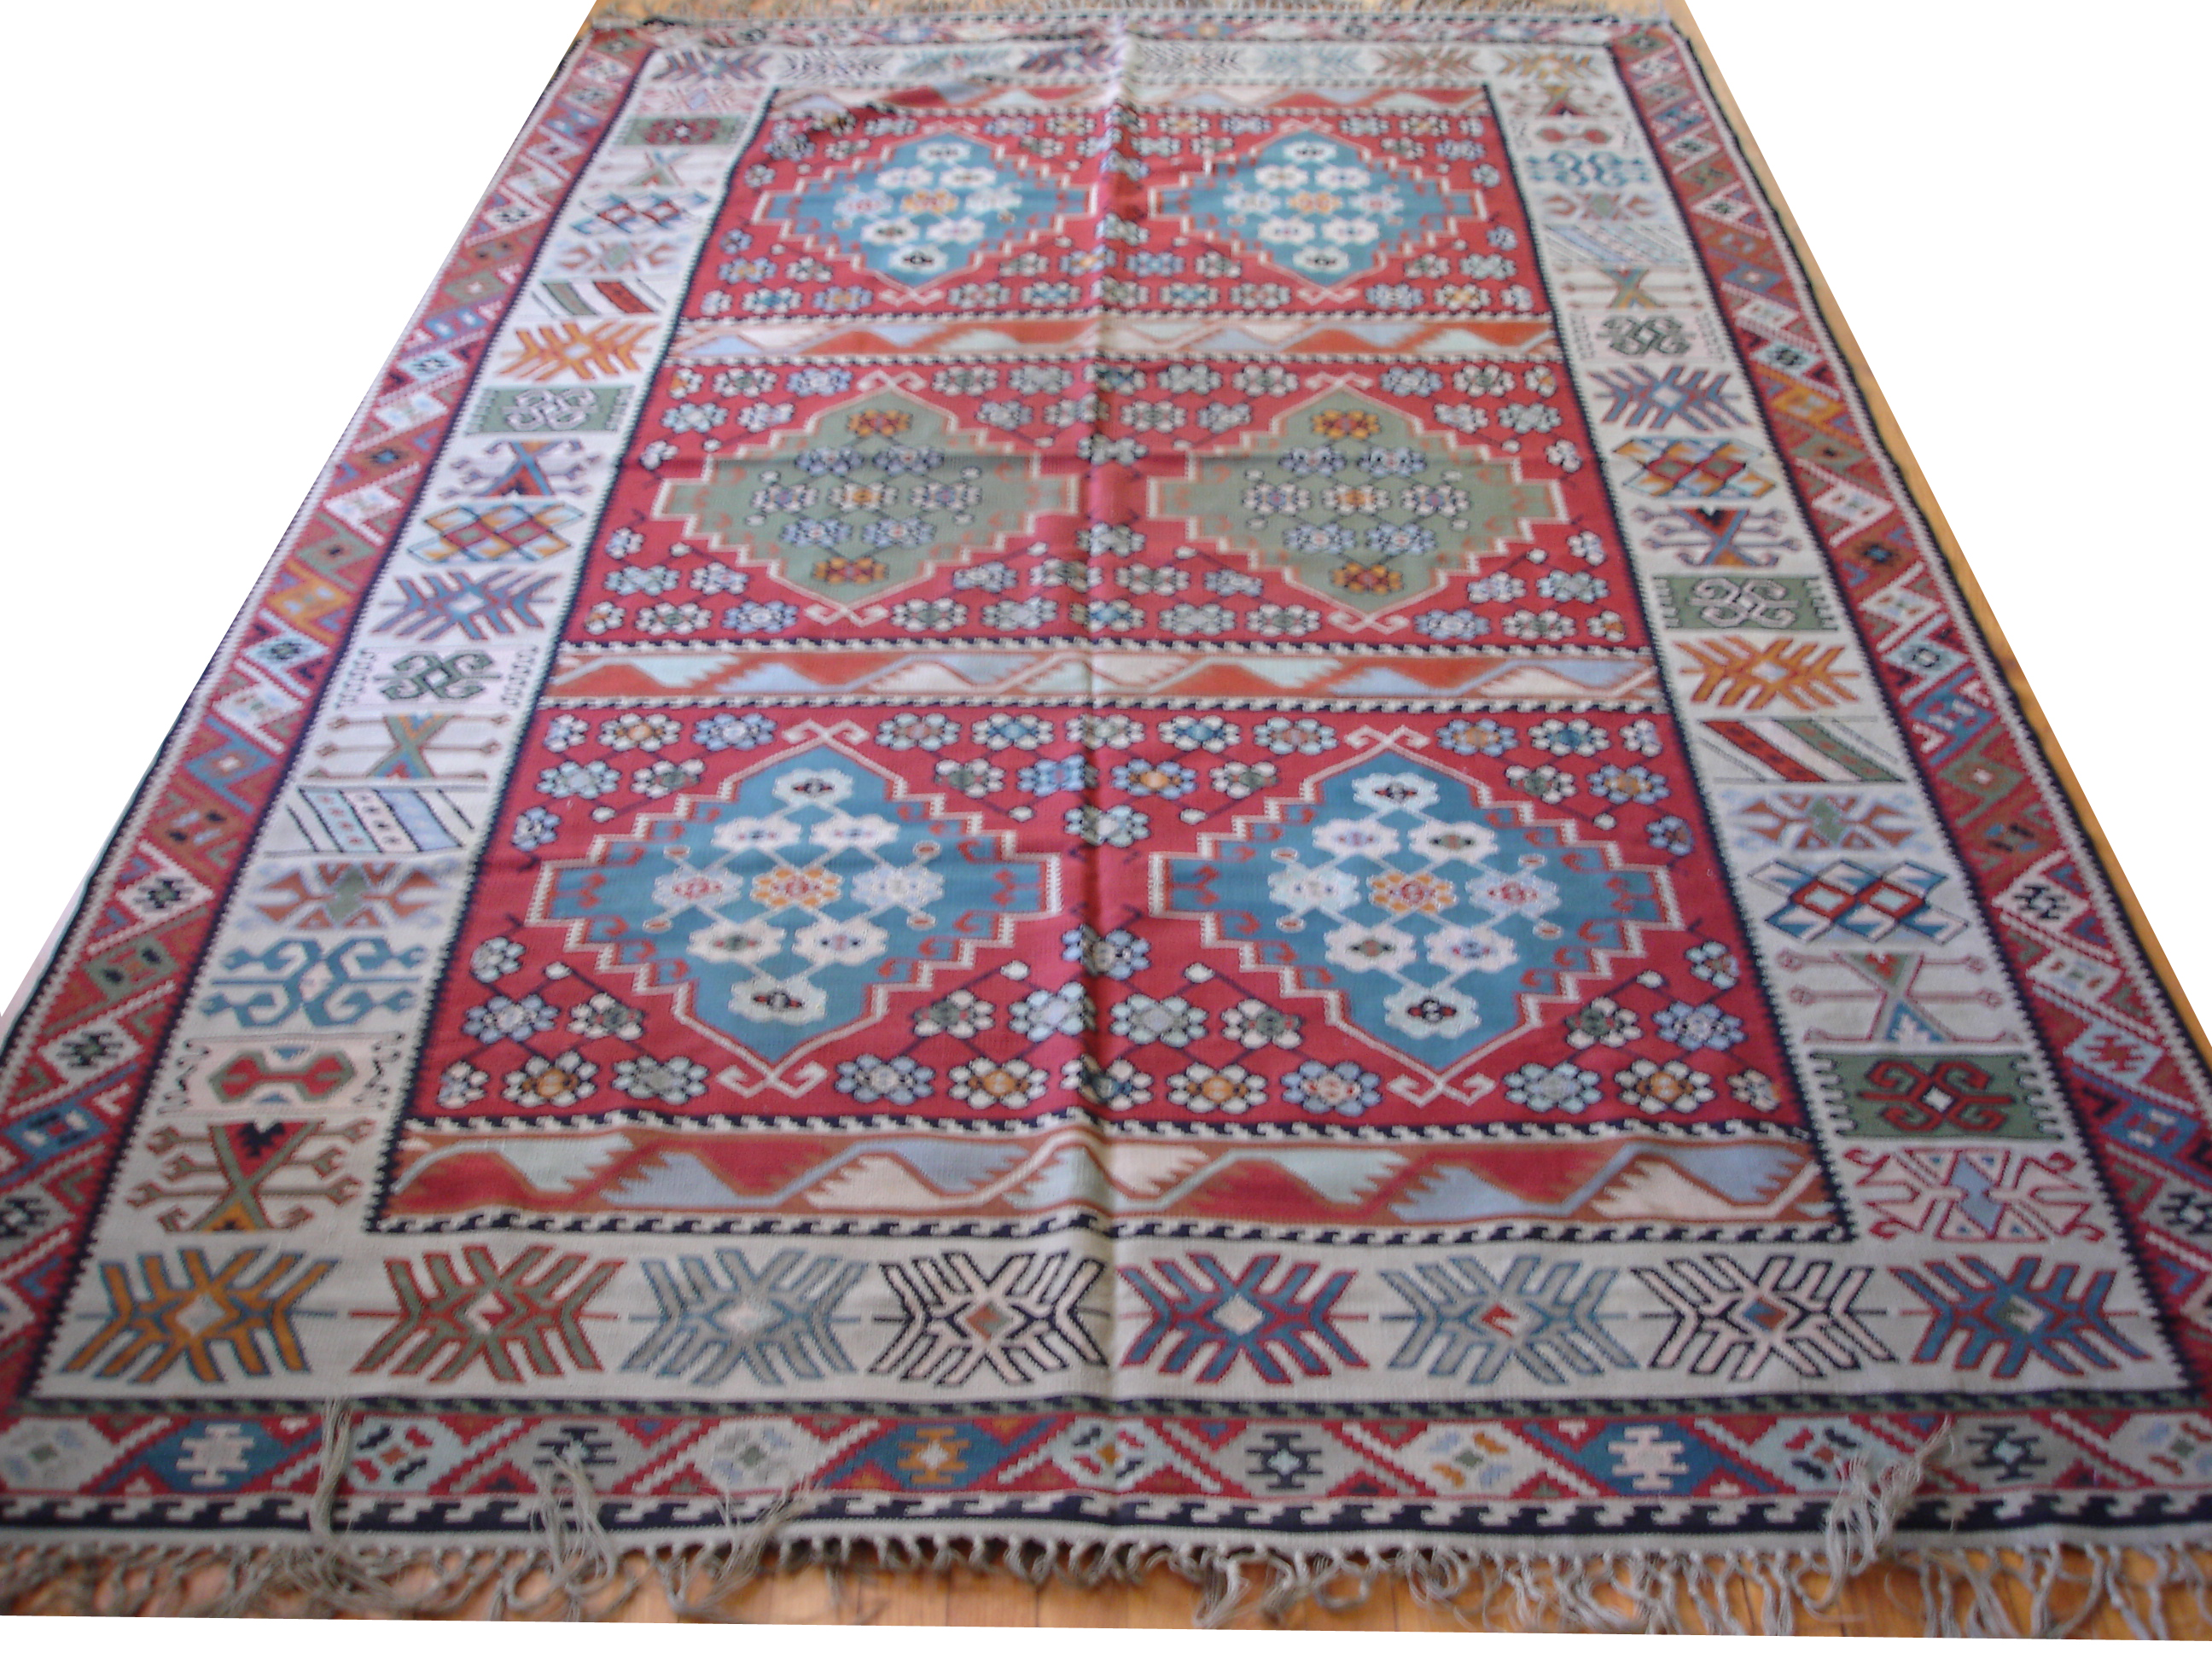 Flat Weaves - Kilims, Dhuries, Other